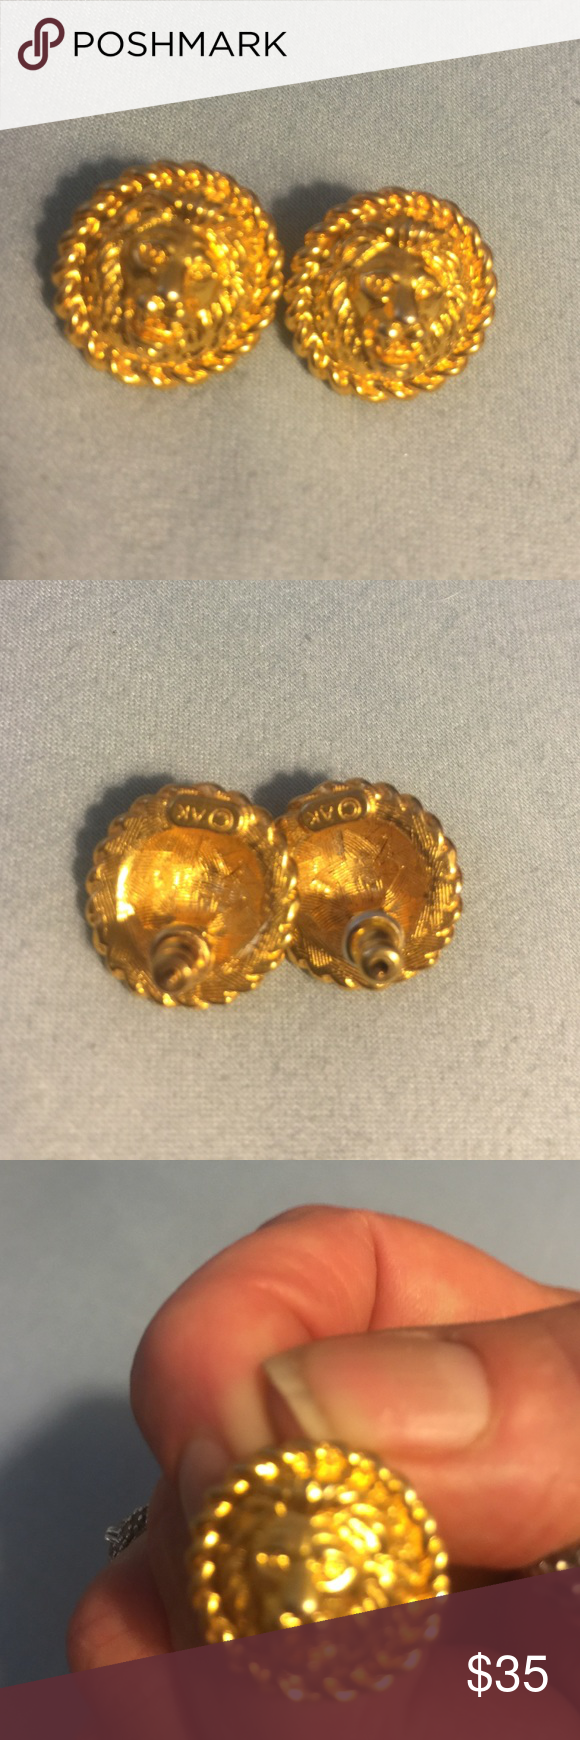 14k gold lion earrings. Stunning gold pierced Amazing 14k gold lion earrings. Gorgeous gold glimmer with a unique and vintage look to the design. The lion is amazing they are a post type pierced earring. Remember offers always welcome. Bundling saves and gives you more bang for your buck. I can not ship any items until next week but normally same day shipping or within 24 hrs. You will not be waiting for your purchase to ship. 30% off bundles of 3+. These are gorgeous gold not gold overlay…